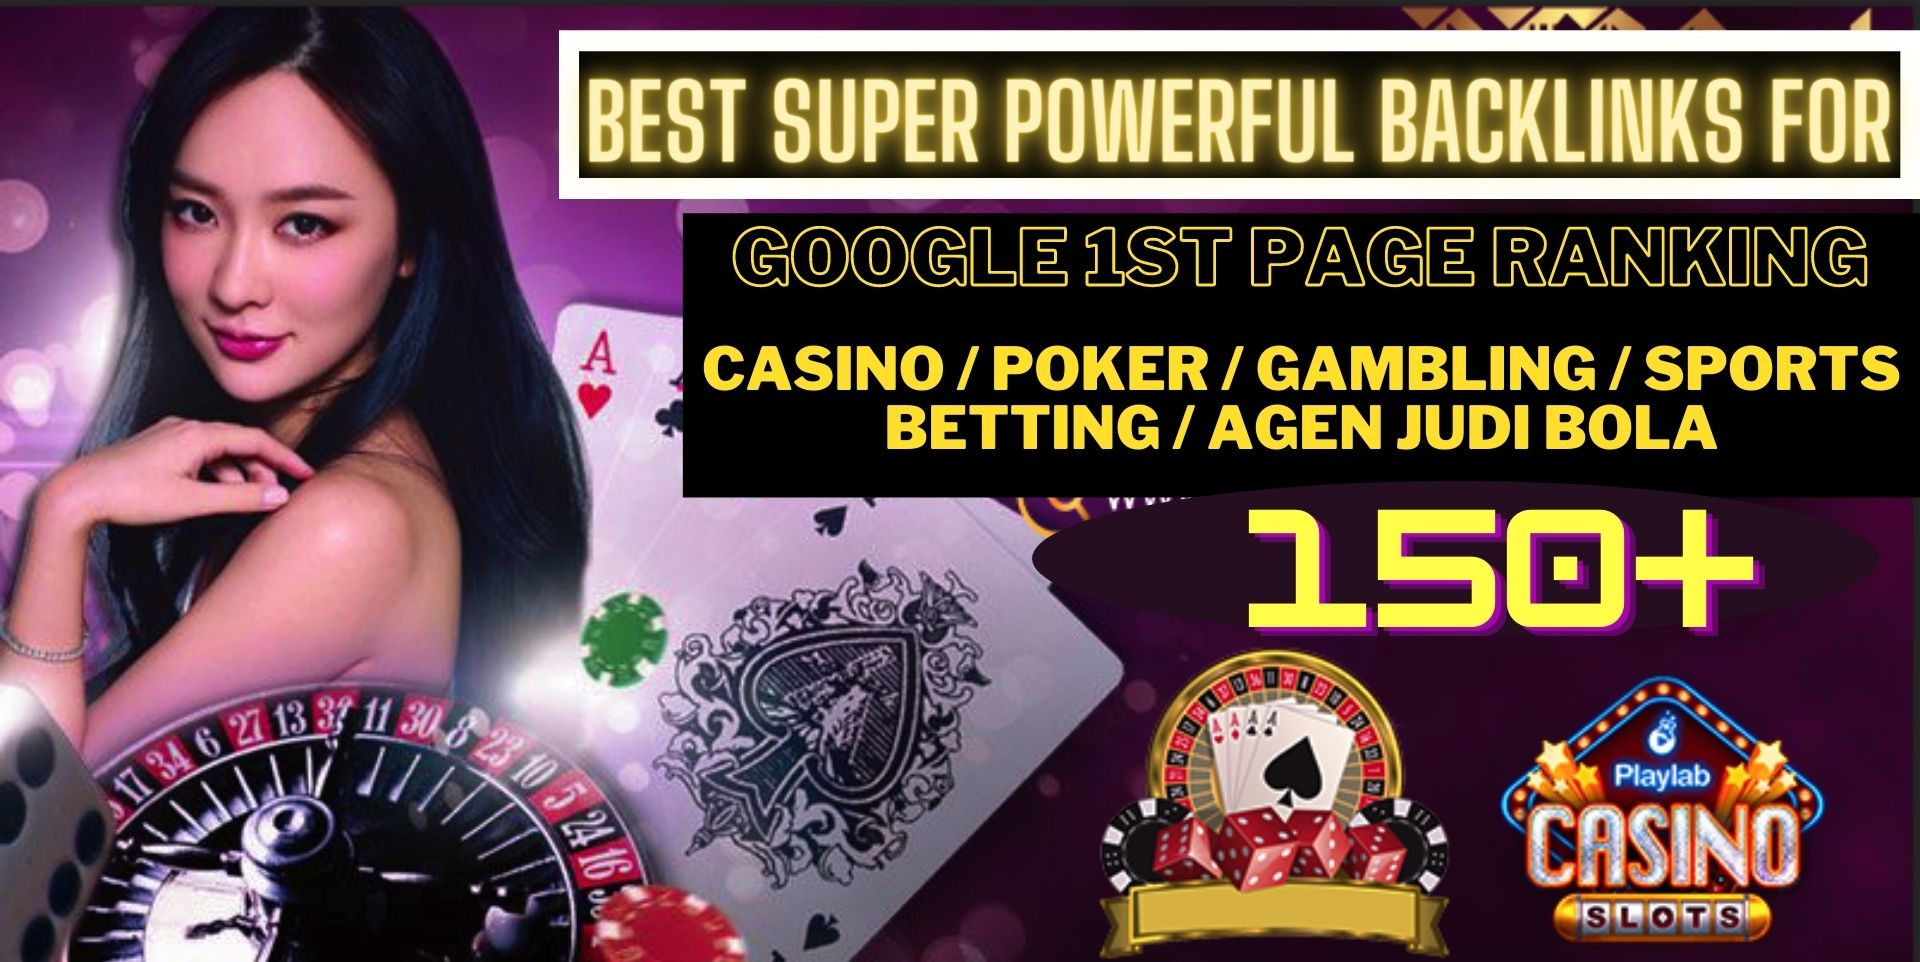 GET POWERFUL 150+ CASINO/POKER/Gambling/Sports Betting/judi bola BACKLINKS high authority da sites